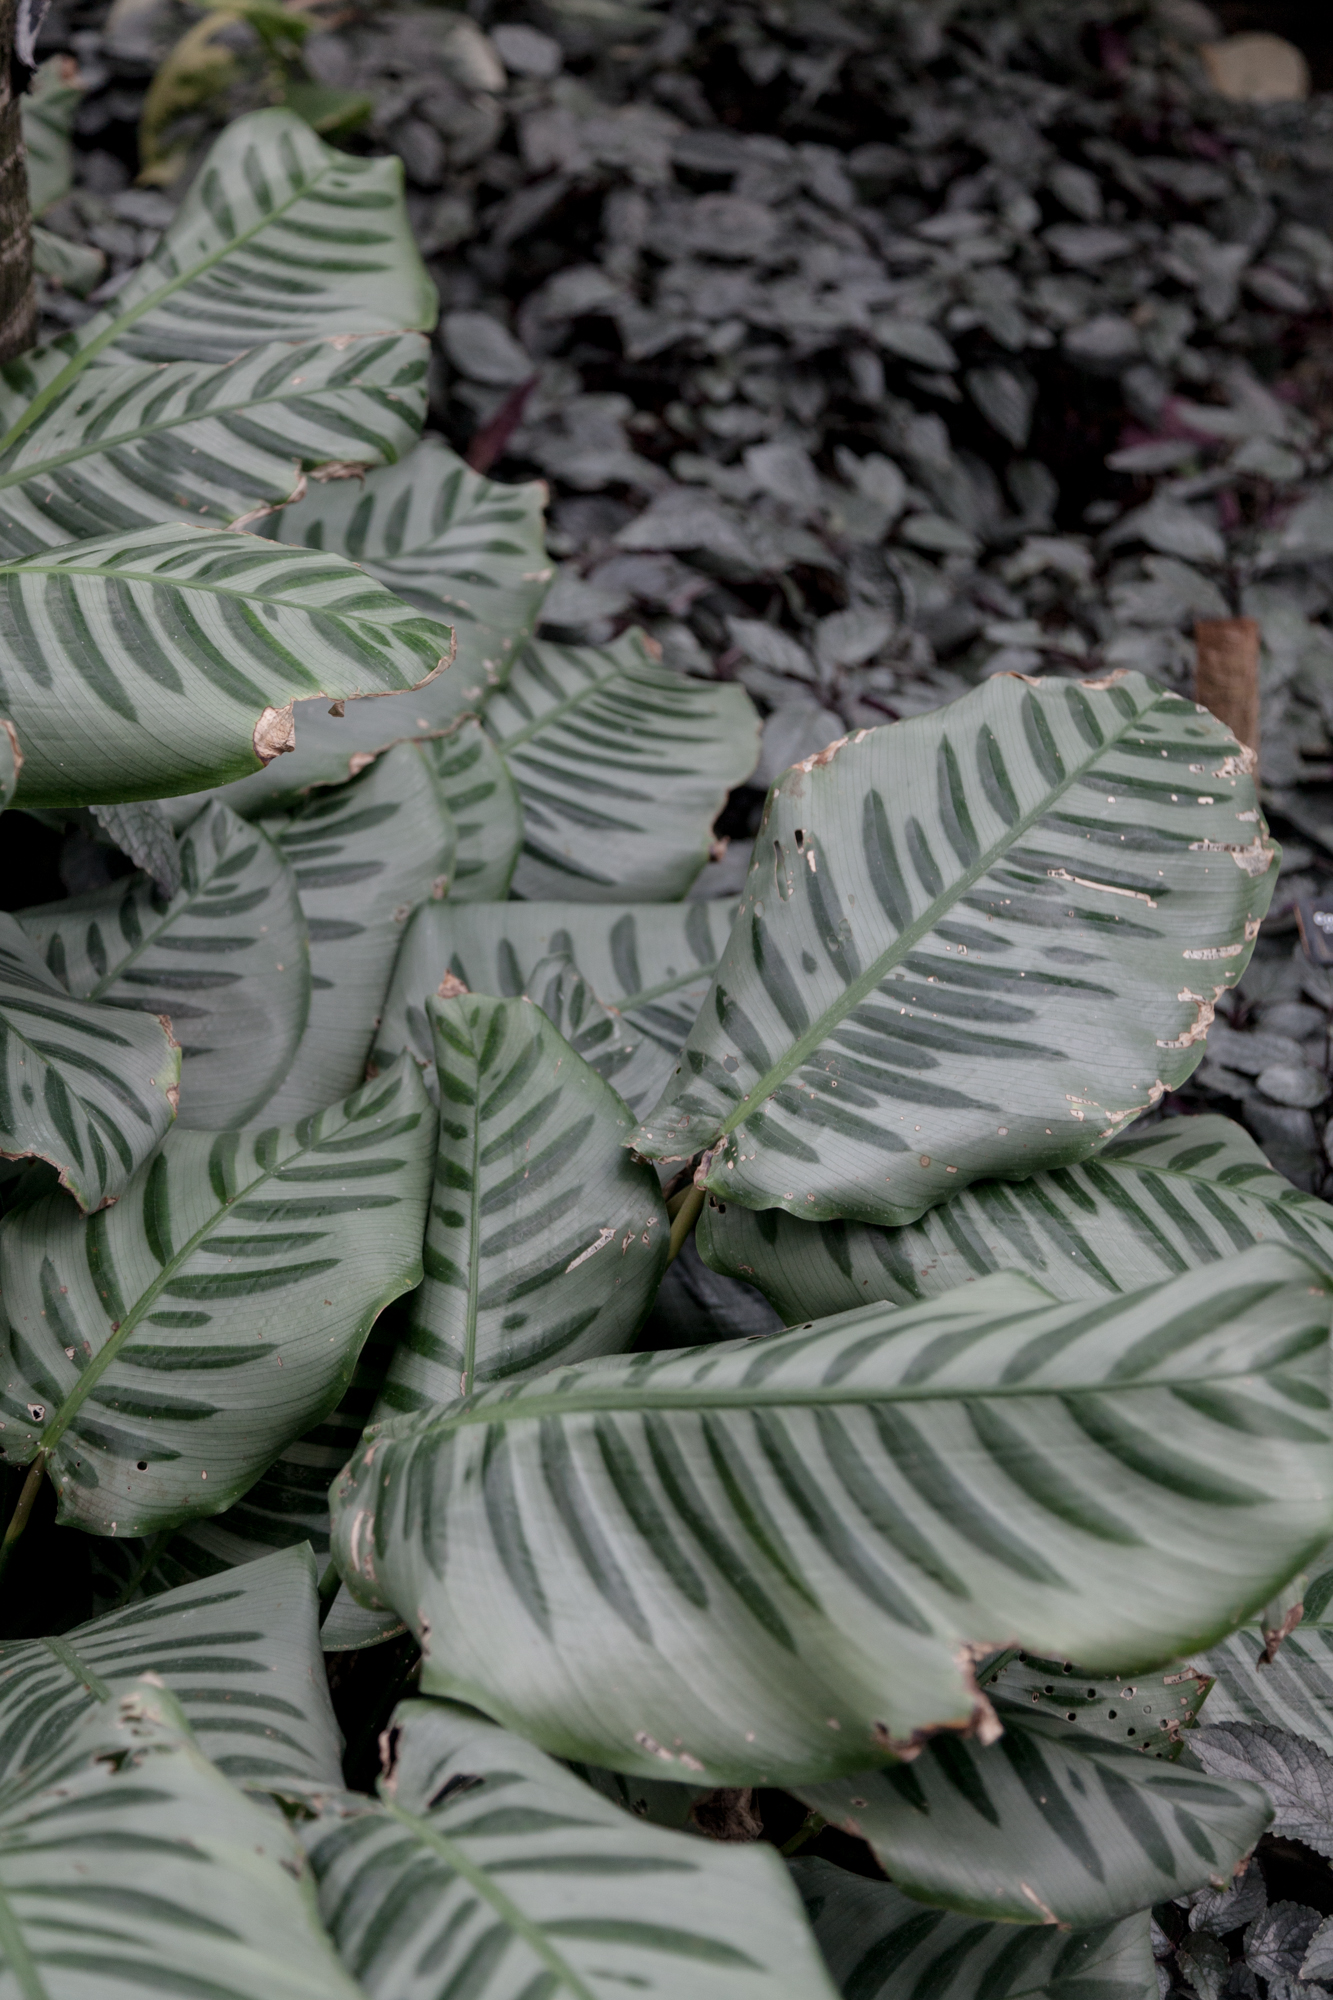 Calathea bella  growing large at the Garfield Park Conservatory.